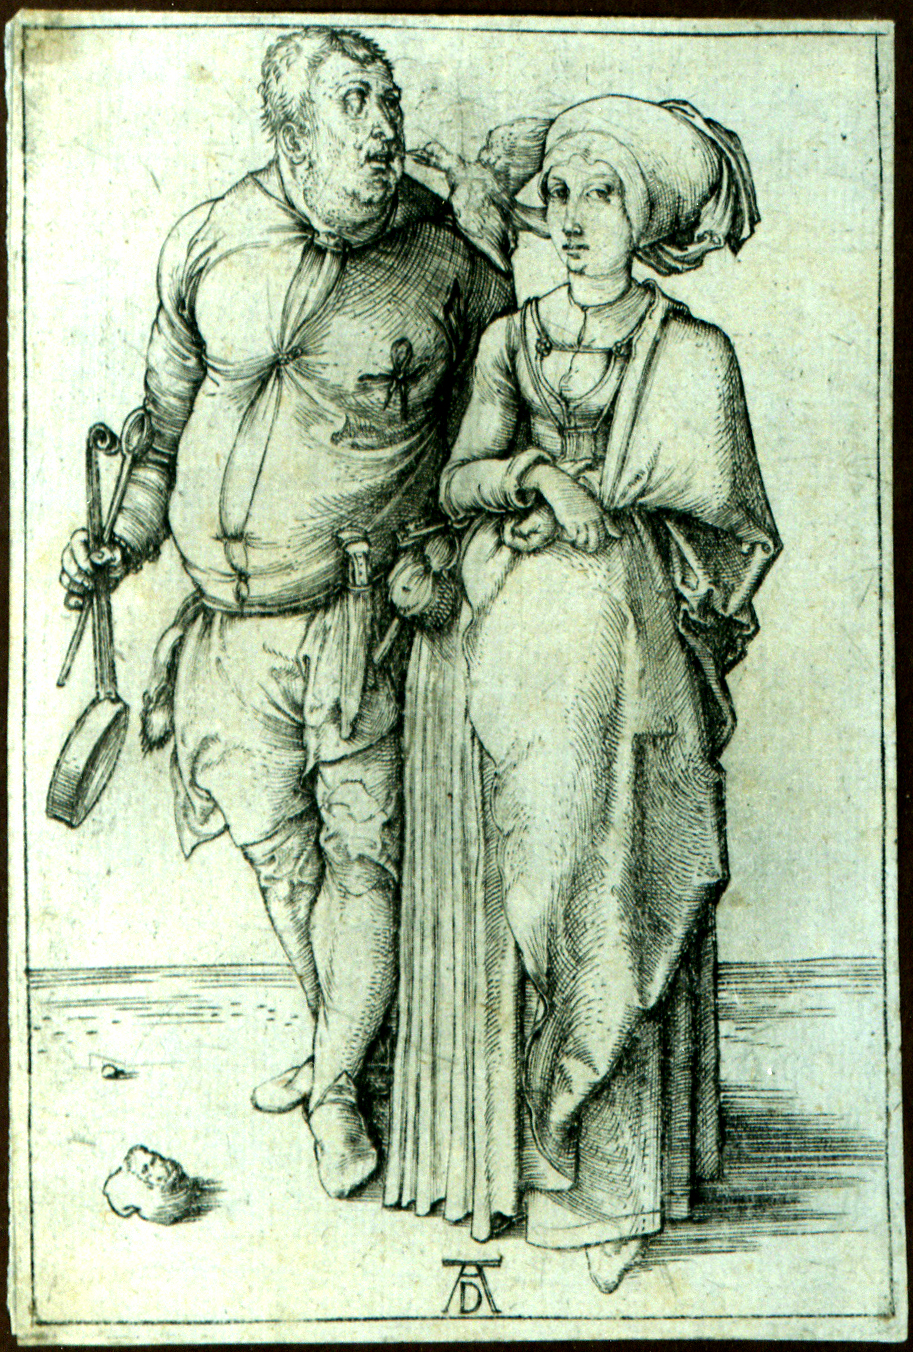 Albrecht Dürer, The Cook and His Wife, c. 1497, engraving, Public Domain via Wikimedia Commons, previously for sale at Sears for $225, framed.